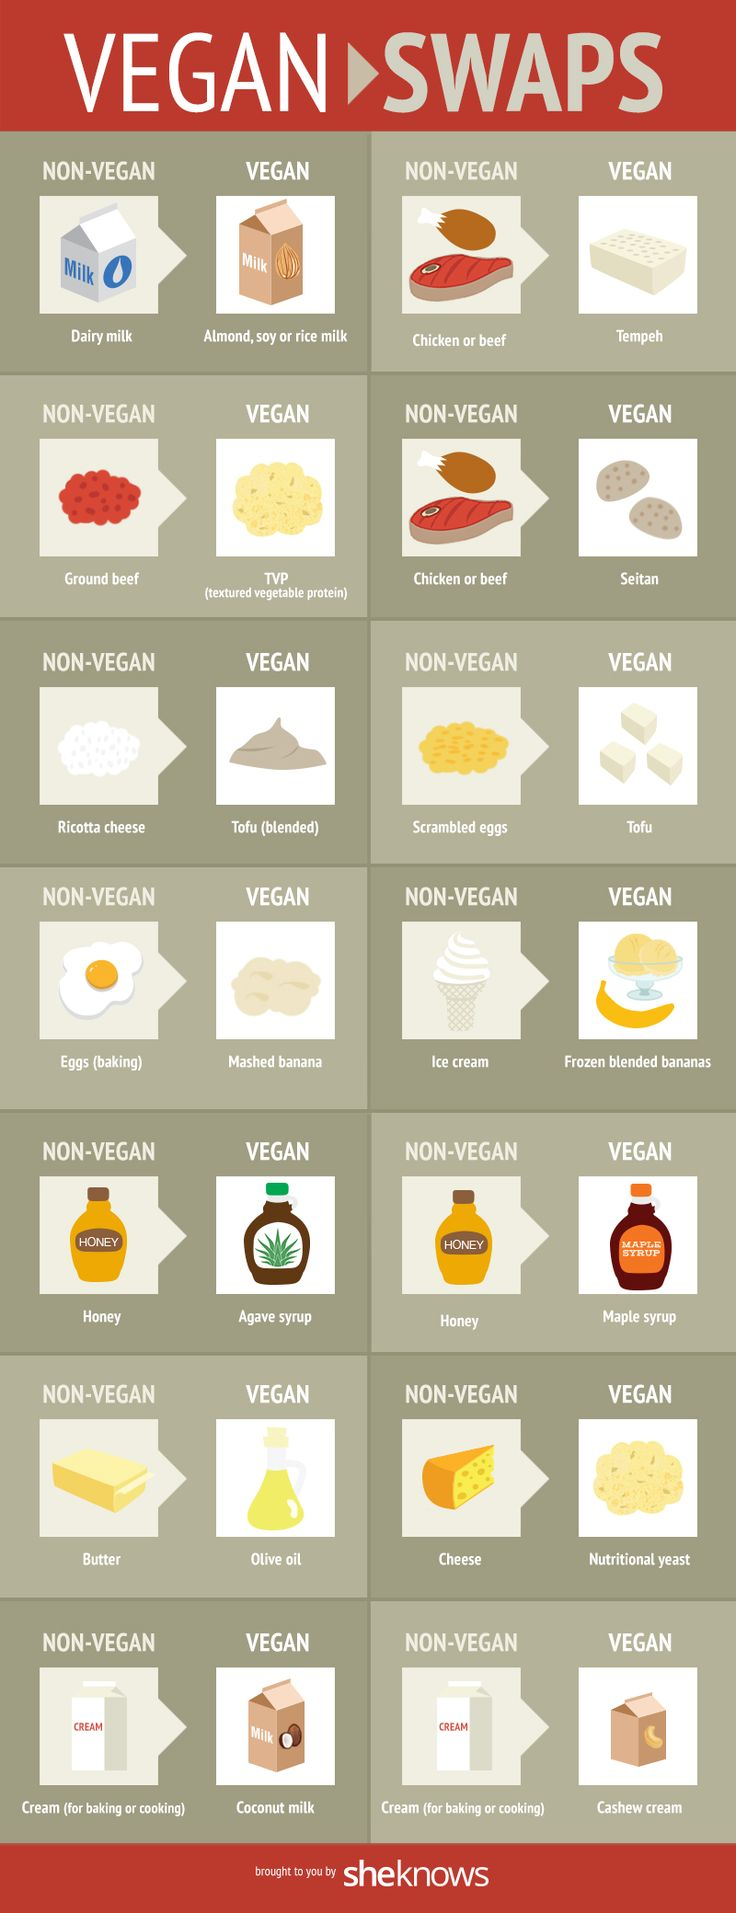 Vegan Swaps! Very helpful for the aspiring vegans :)